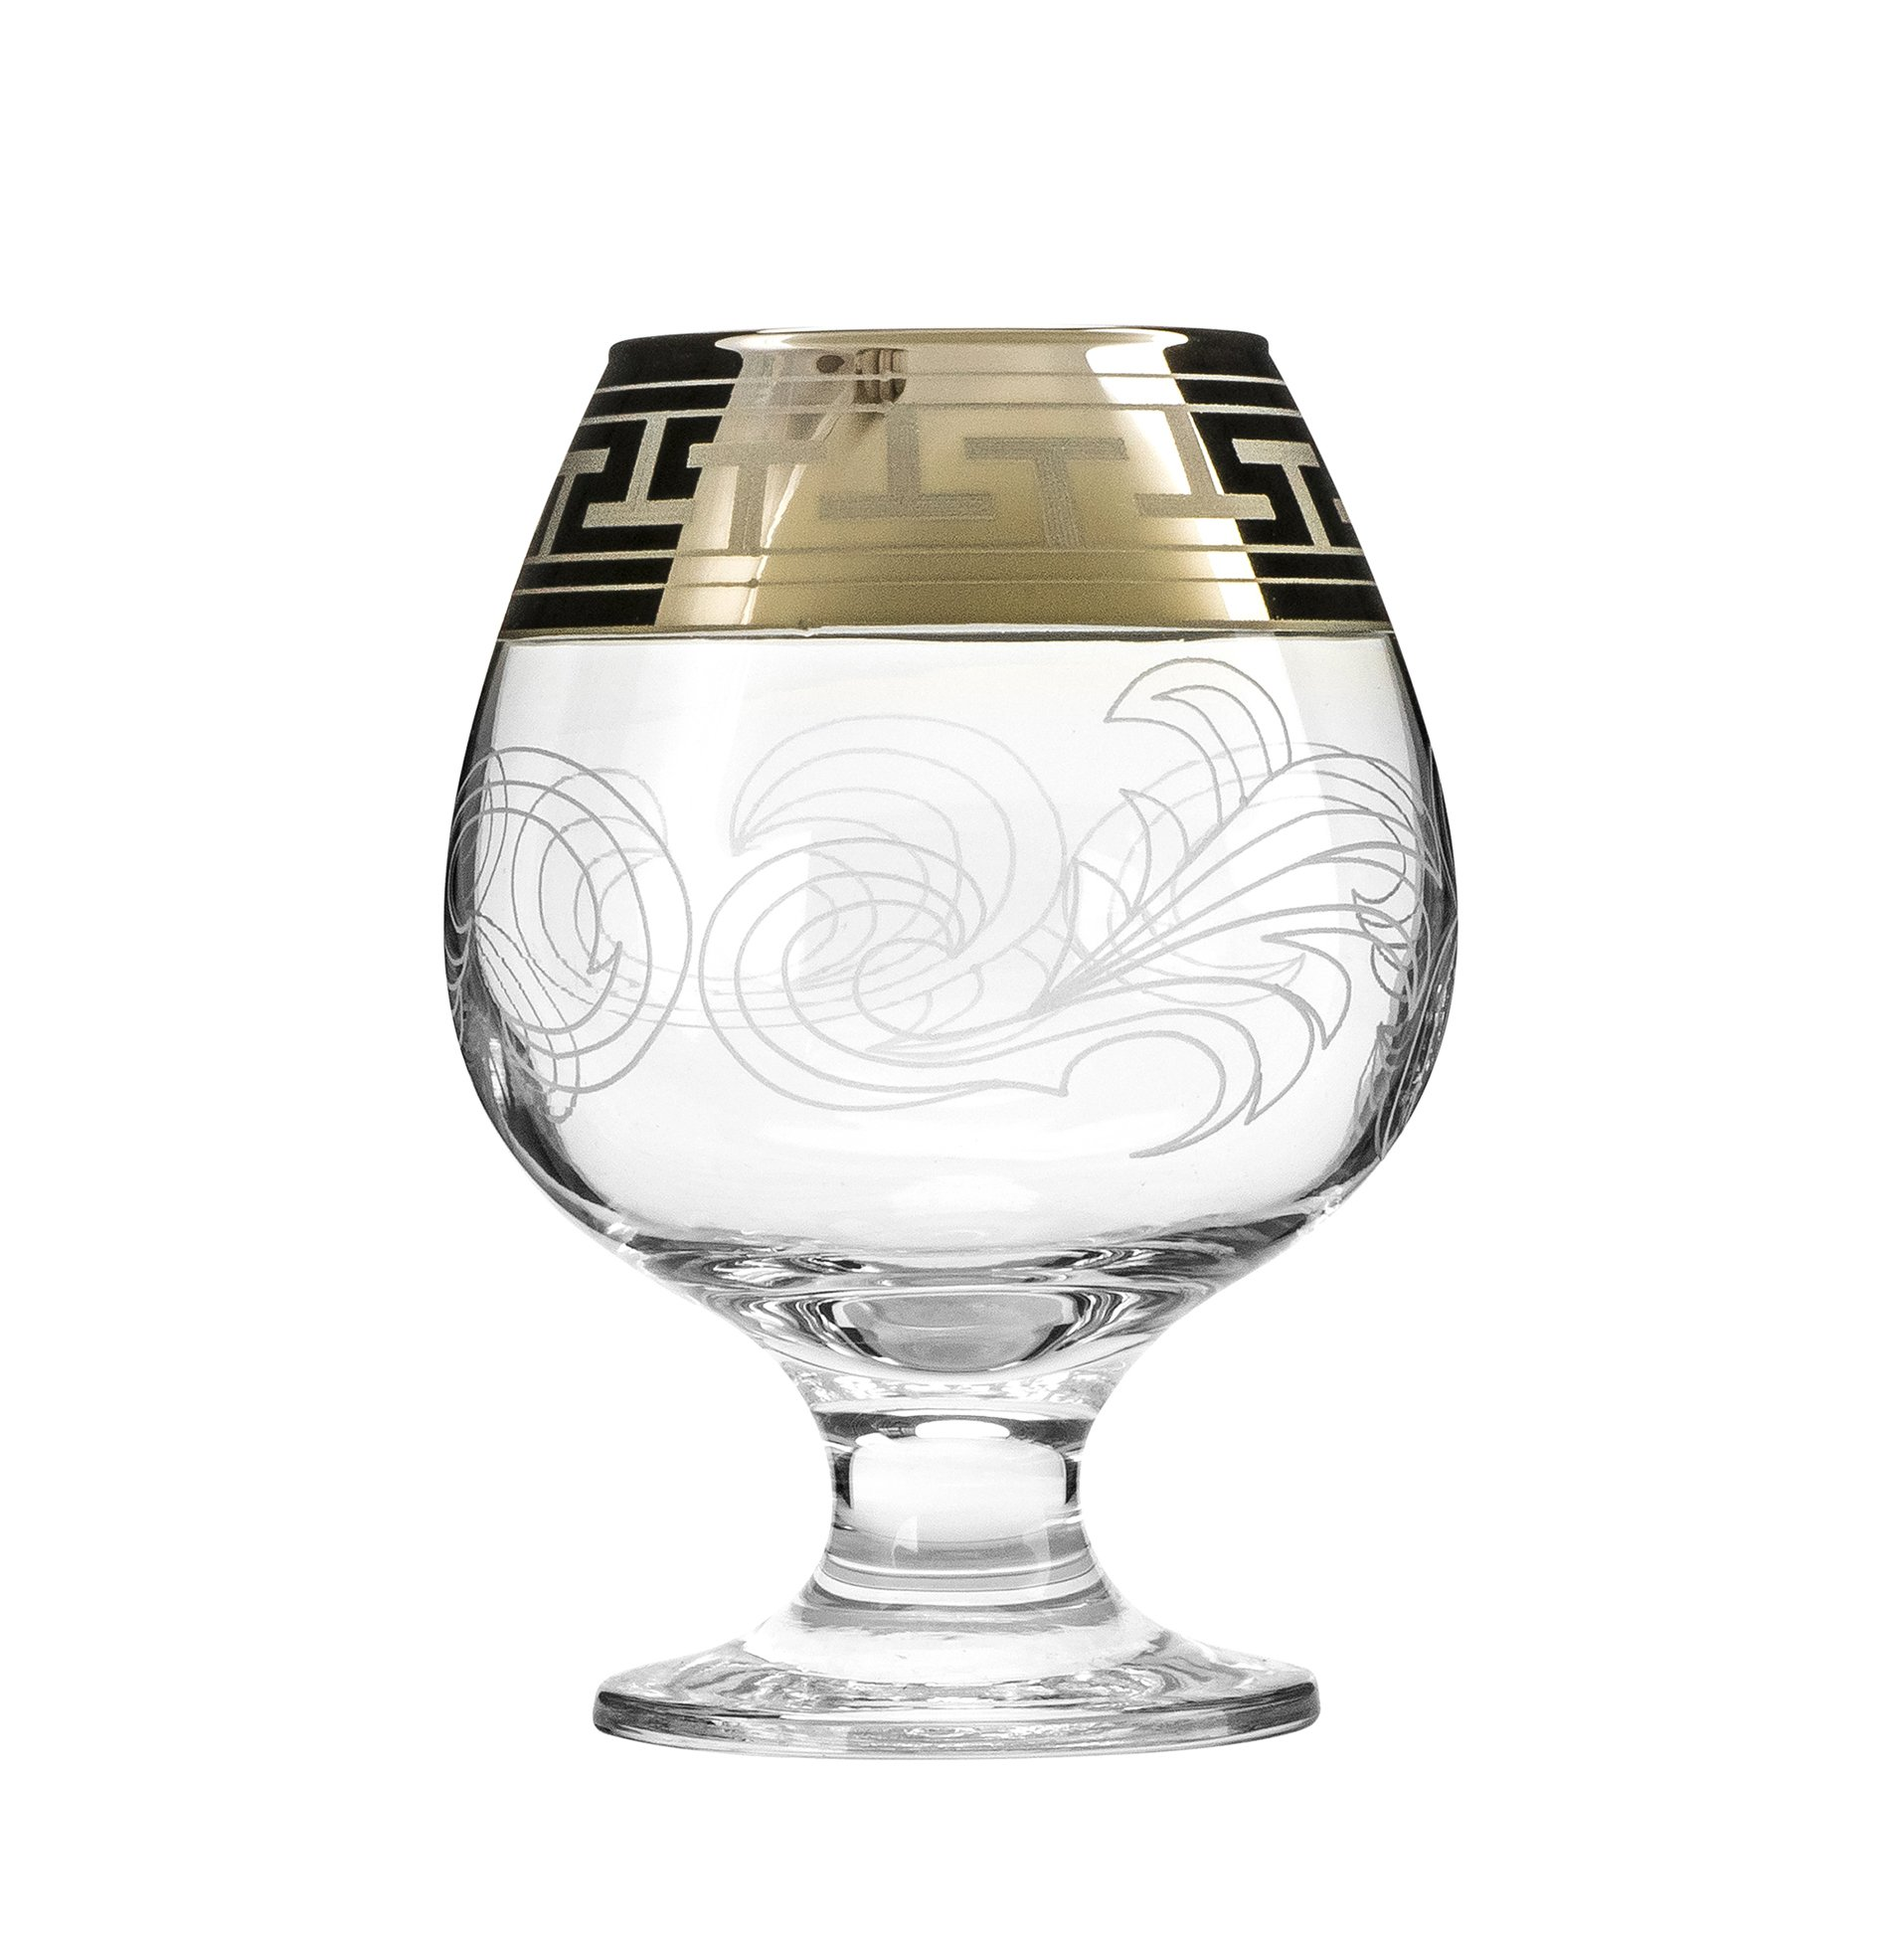 Crystal Goose, 13.5 Oz. Brandy Glasses with Gold Rim, Scotch Whiskey Bourbon Snifters on a Stem, Wedding Drinkware, Gift Box Set of 6